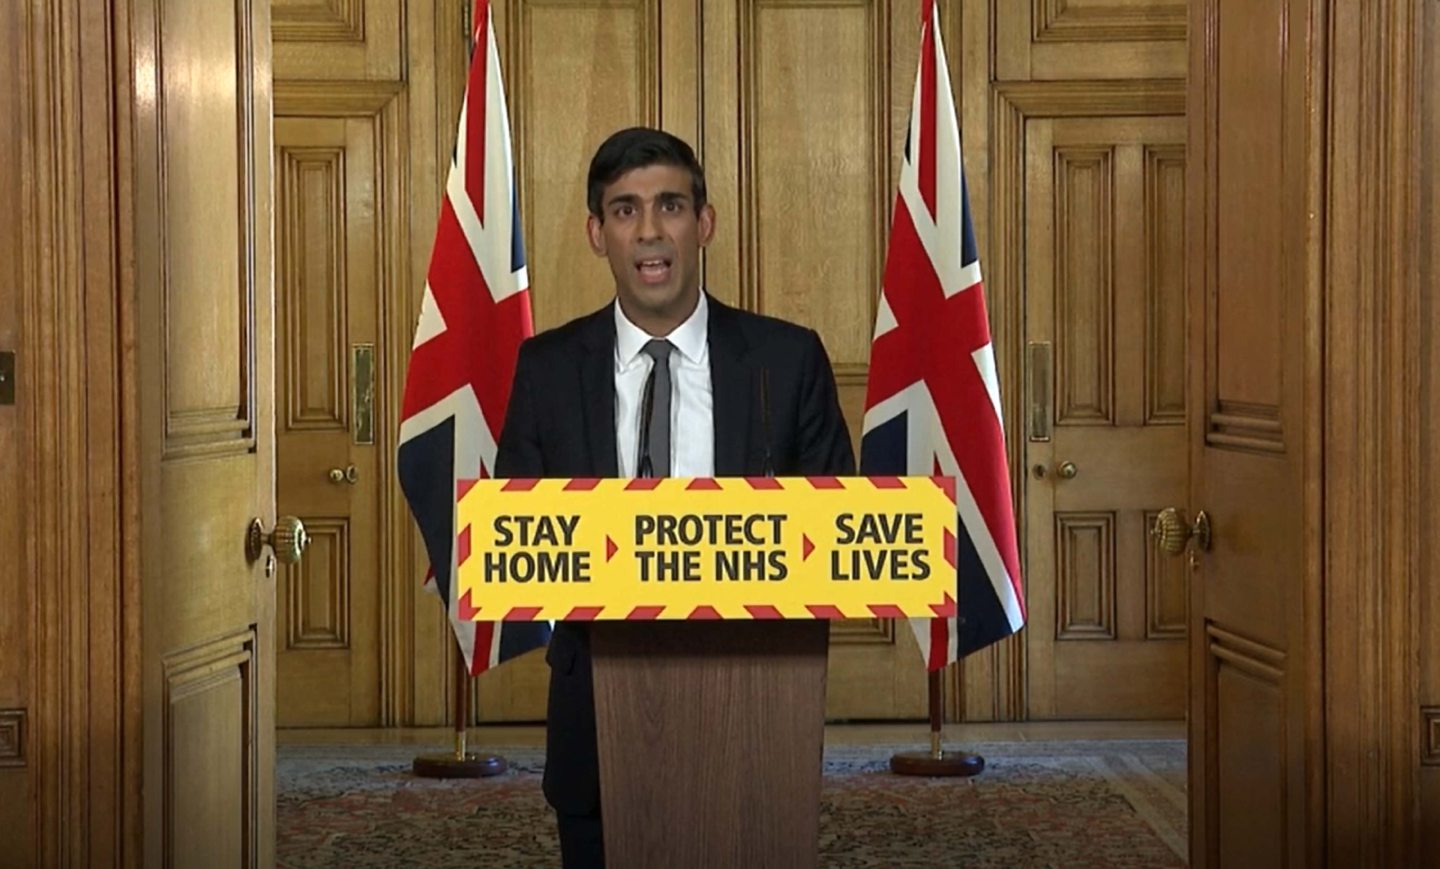 Screen grab of Chancellor Rishi Sunak during a media briefing in Downing Street, London, on coronavirus.